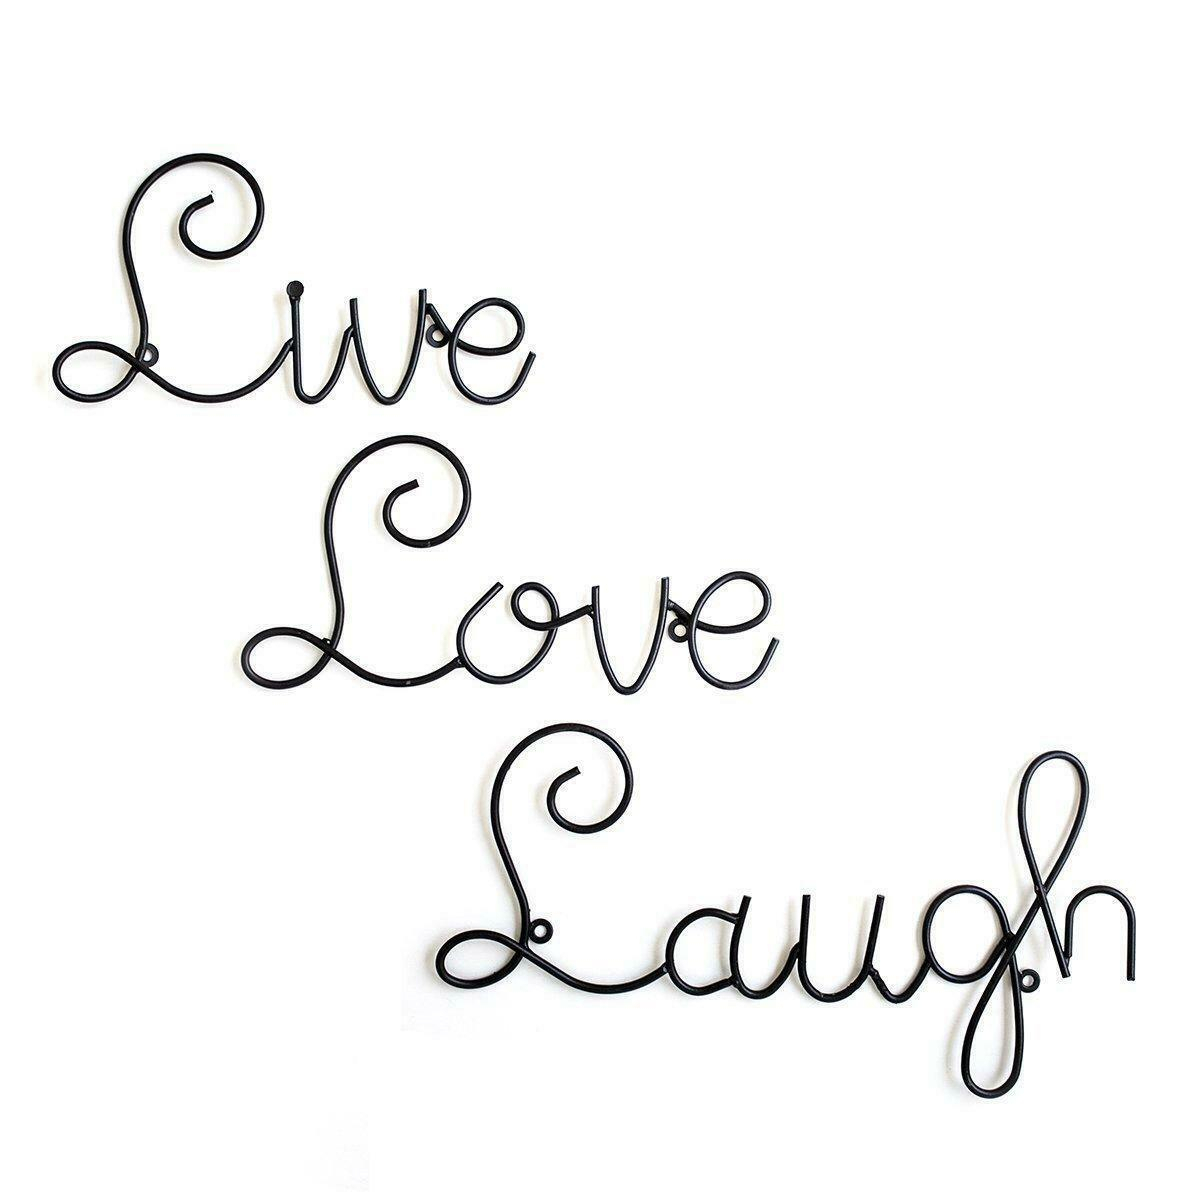 Details About Live Love Laugh Set 3 Metal Wall Decor Art Mount Home Metal Word Decorations Pertaining To Live, Laugh, Love Antique Copper Wall Decor (View 21 of 30)